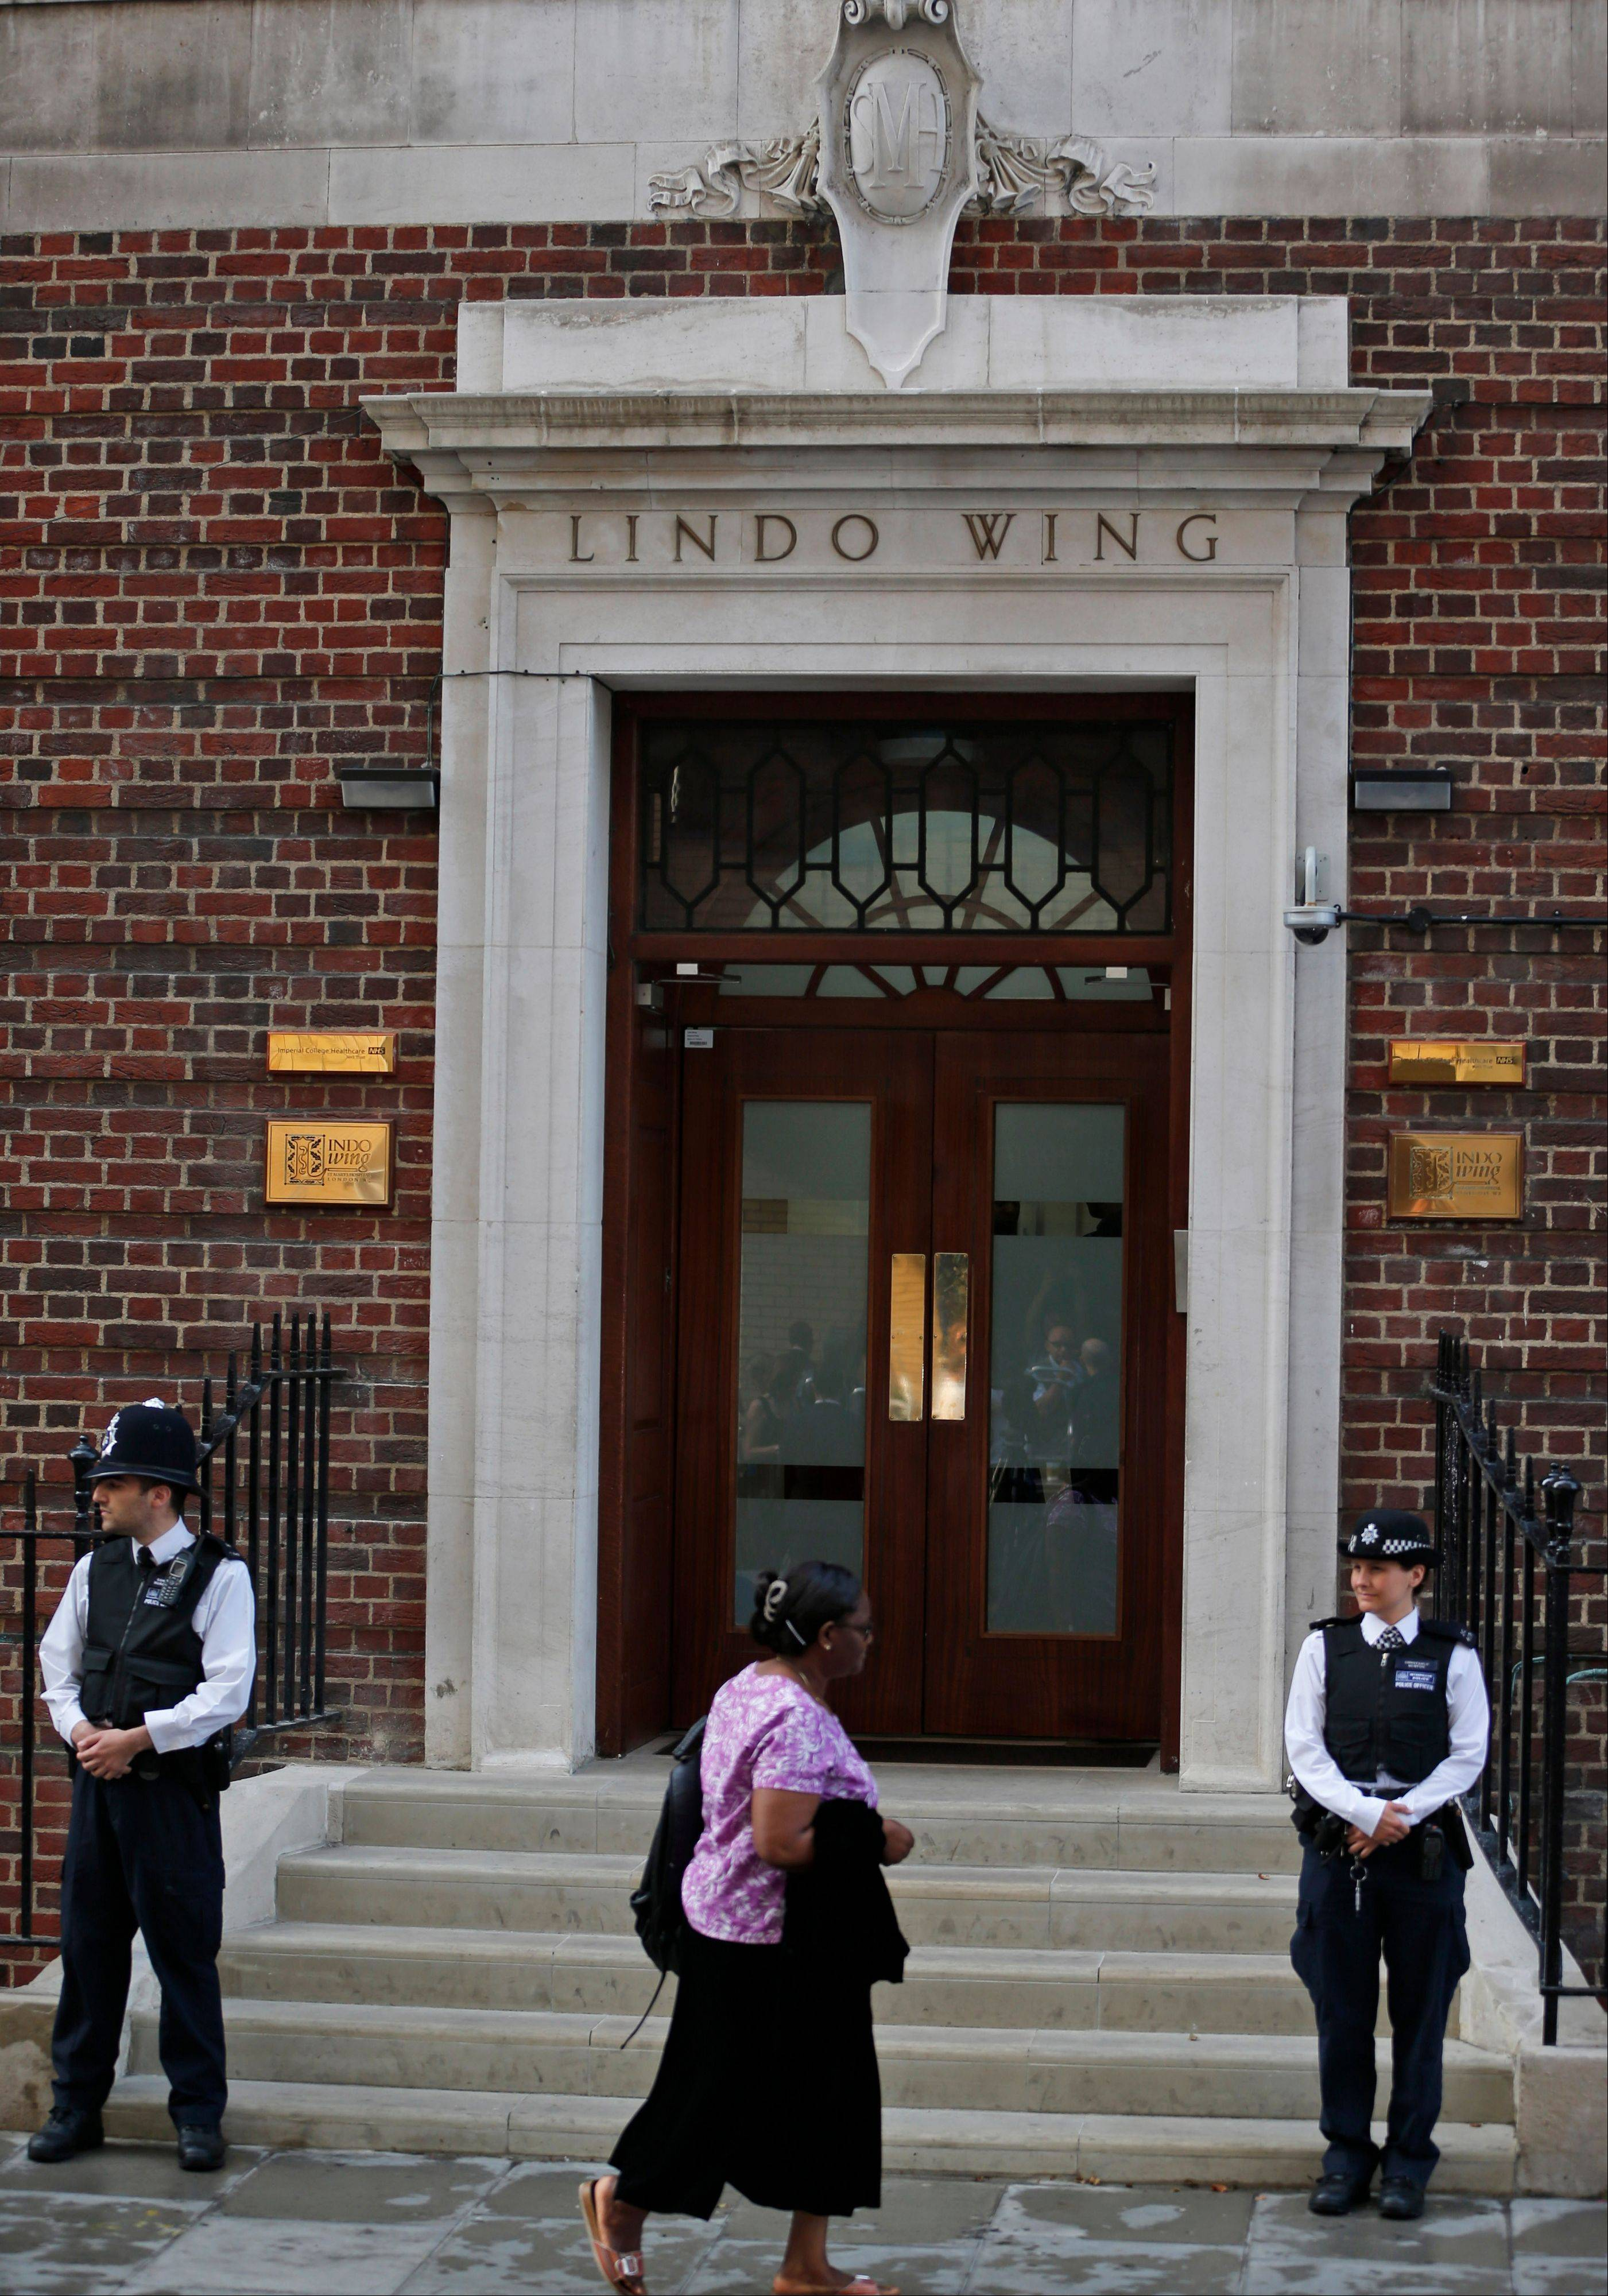 This is scene outside St. Mary's Hospital's exclusive Lindo Wing in London on Monday, before Prince William's wife, Kate, Duchess of Cambridge, gave birth to a son.